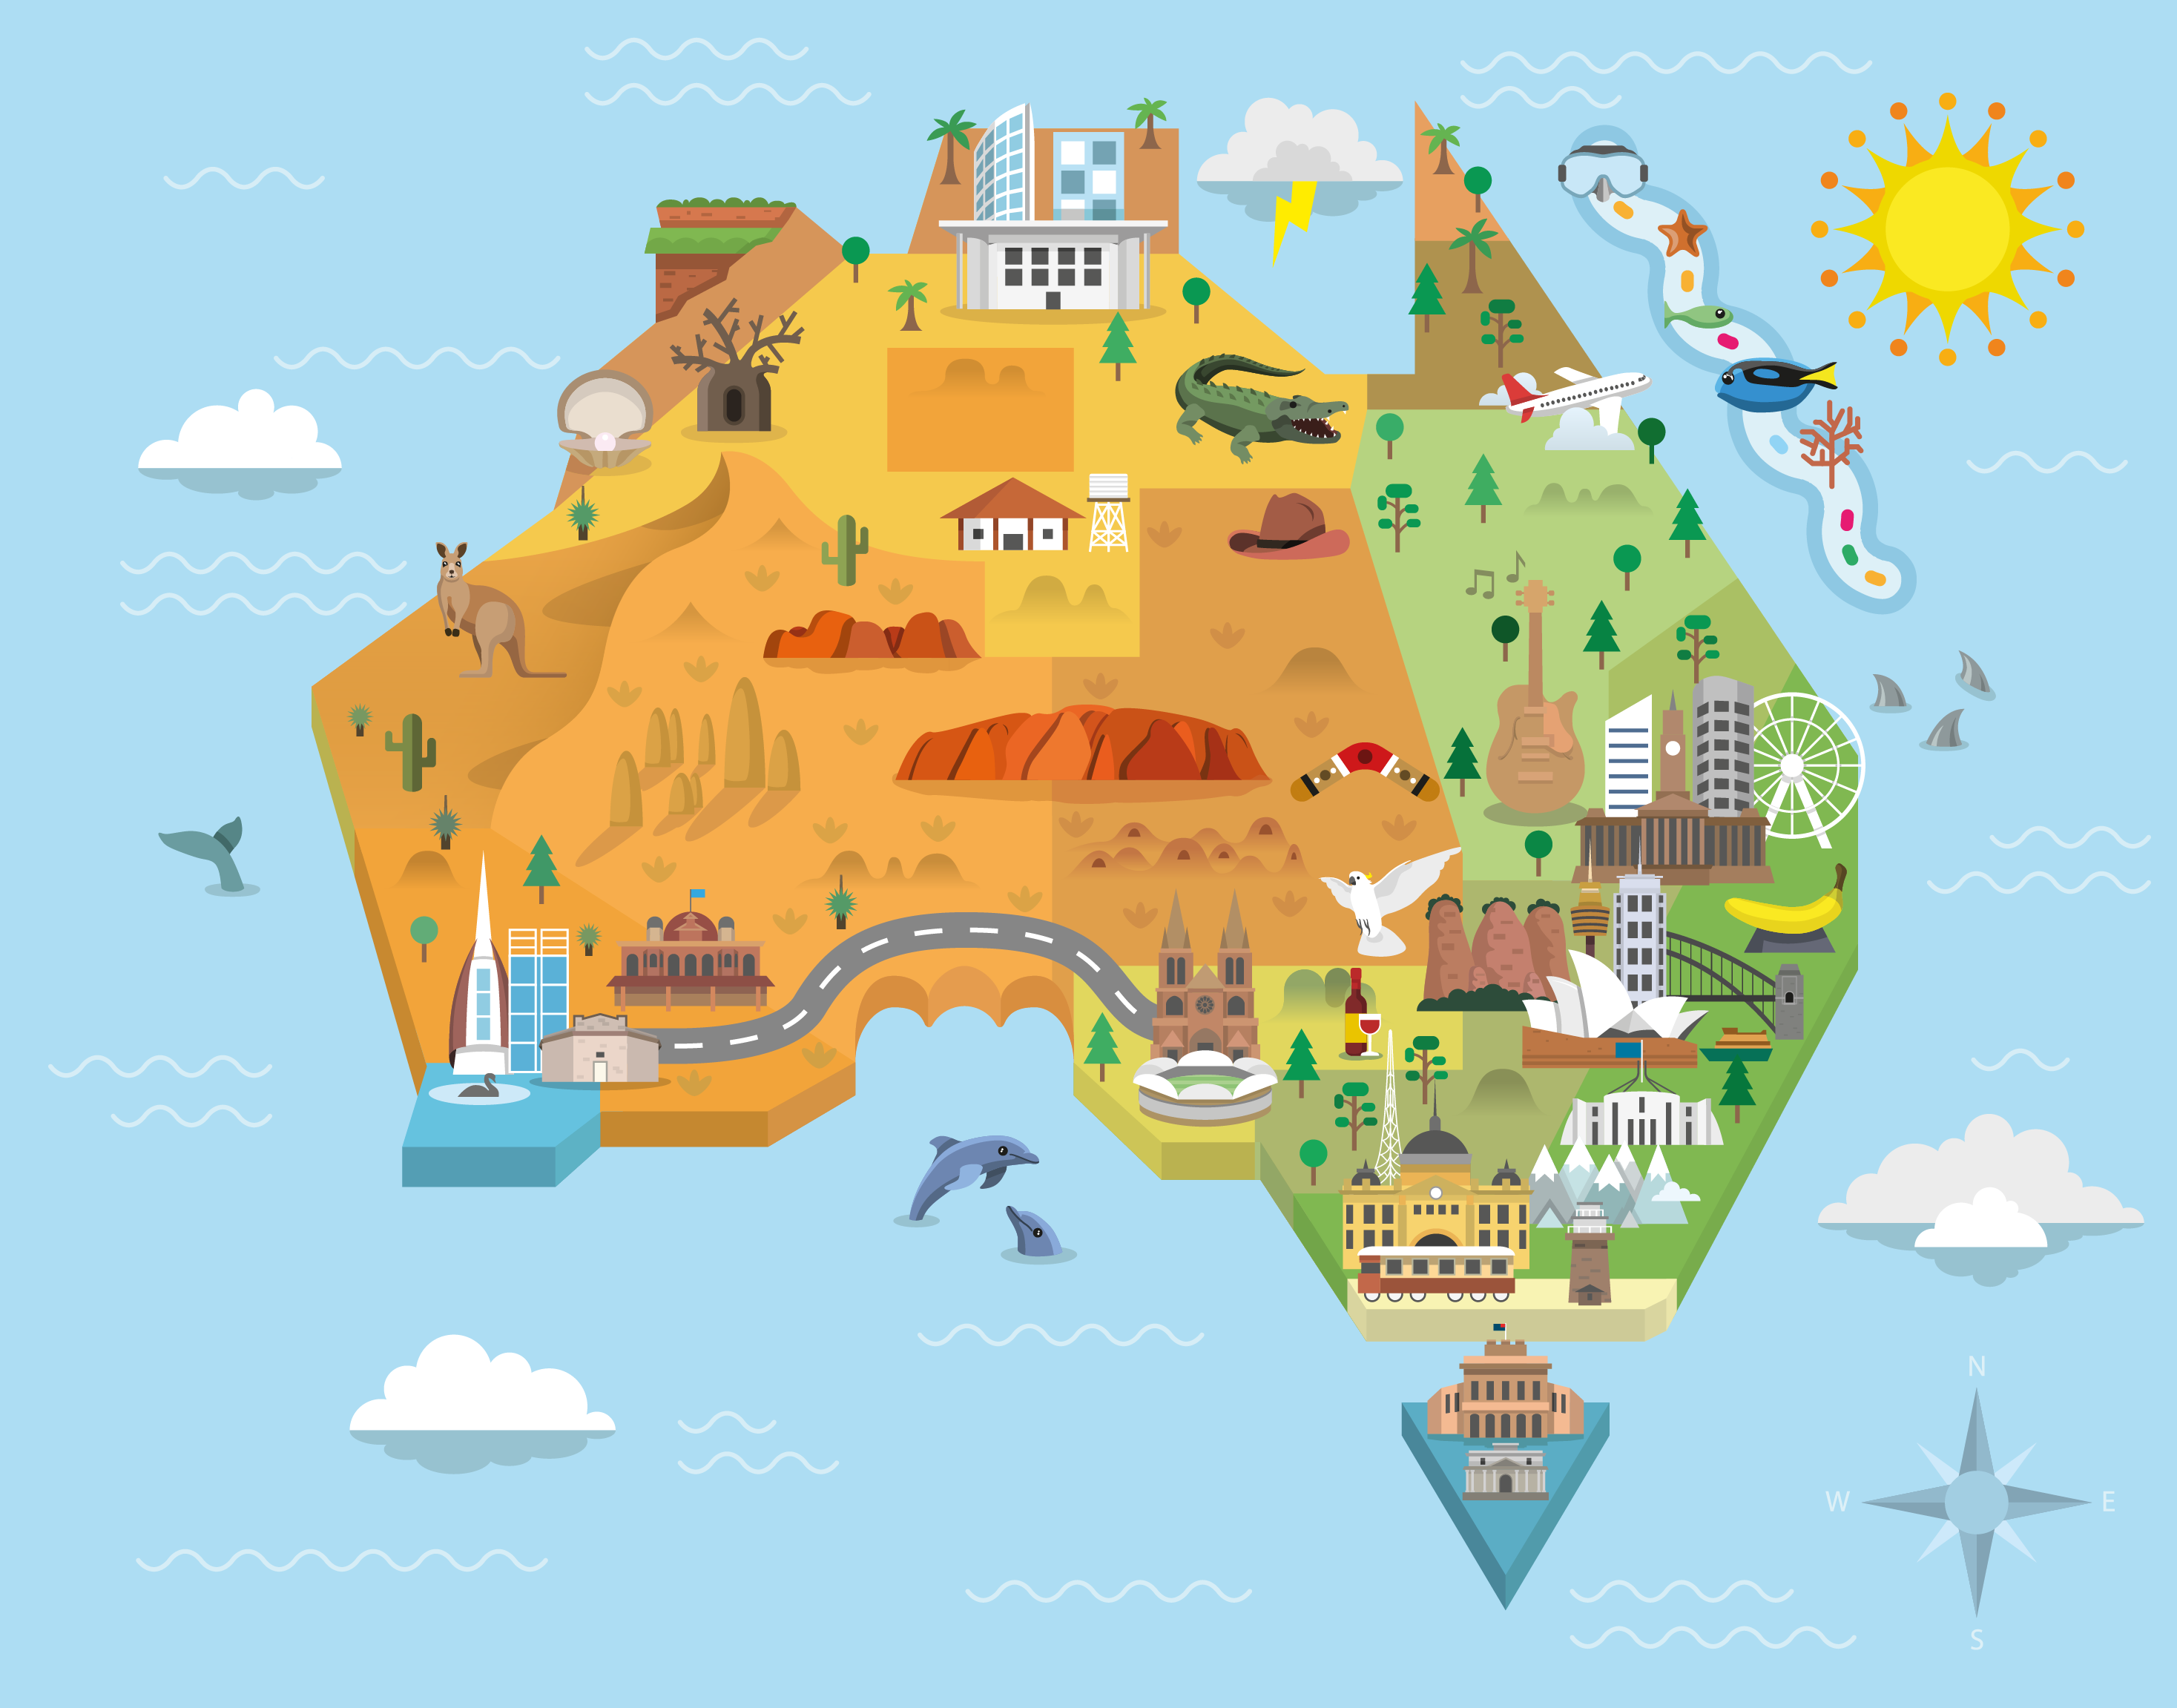 Map Of Australia Images.Australia Graphic Map On Behance